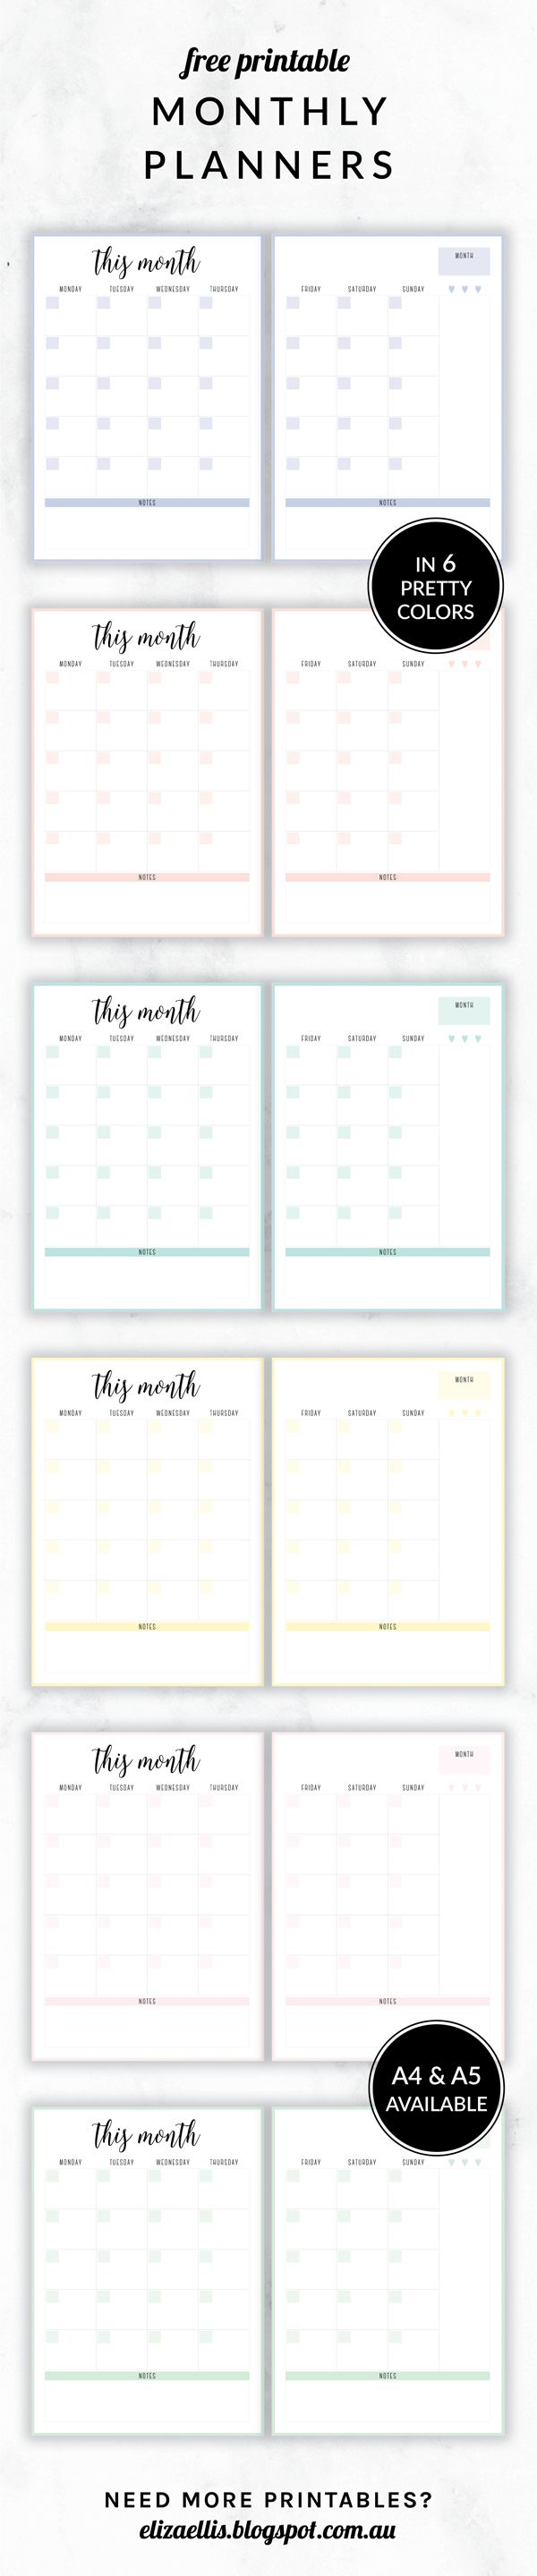 Free Printable Irma Monthly Planners by Eliza Ellis available in A4 and A5 sizes, as well as 6 pretty color themes! Shown here in the color Happy.